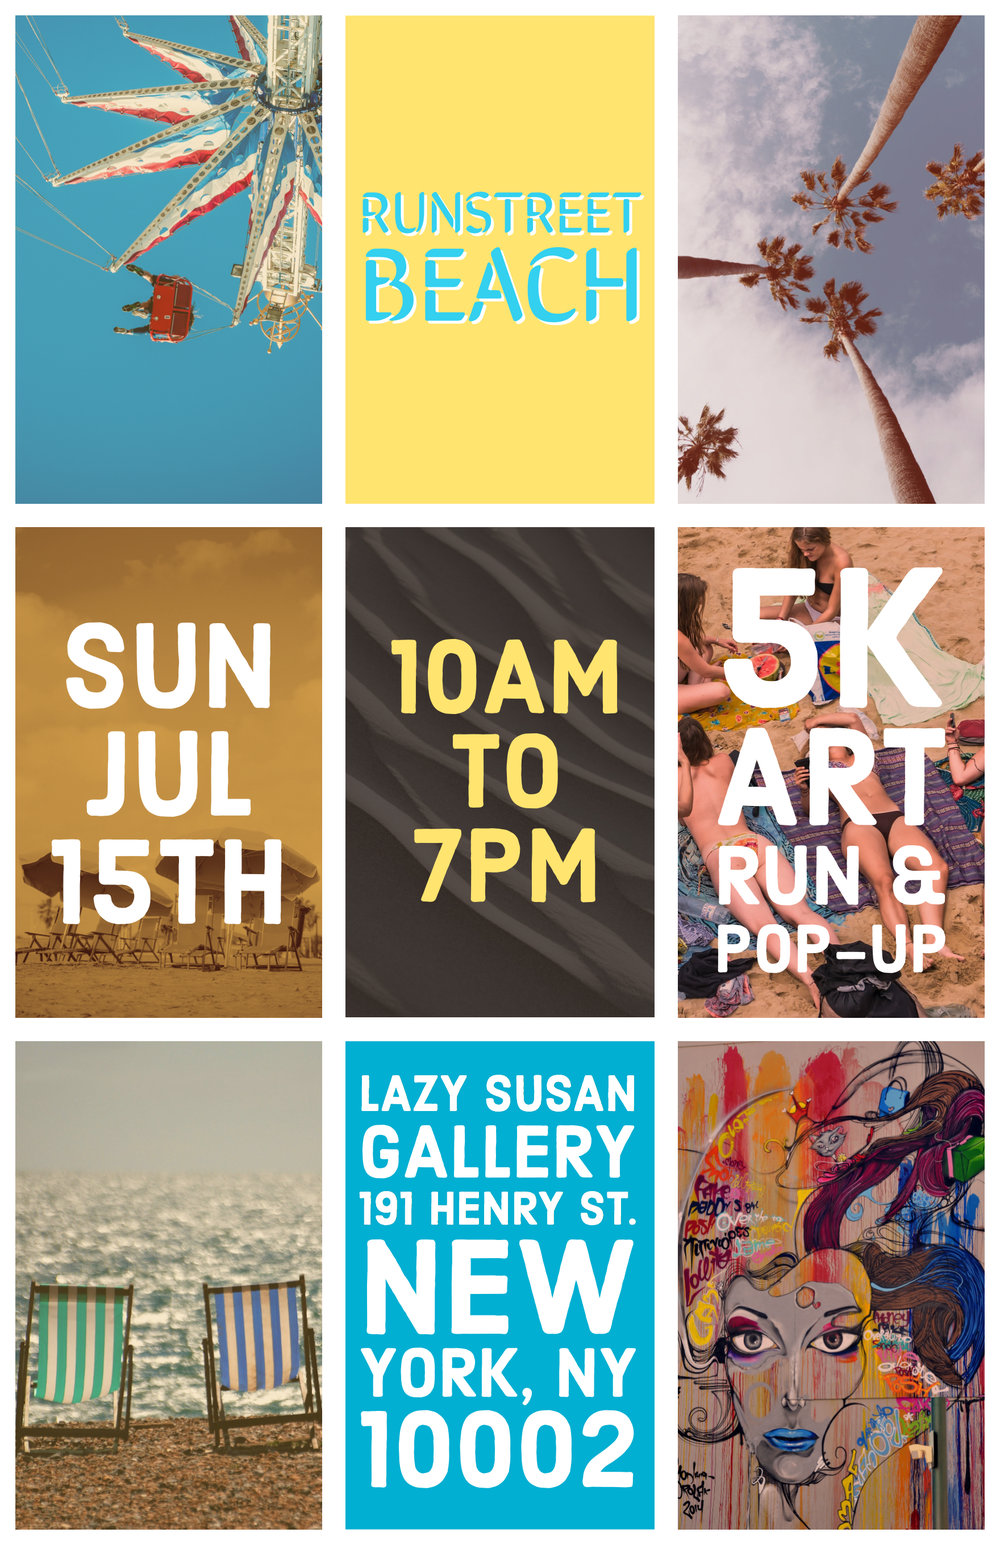 Runstreet Beach Flyer 1.jpg